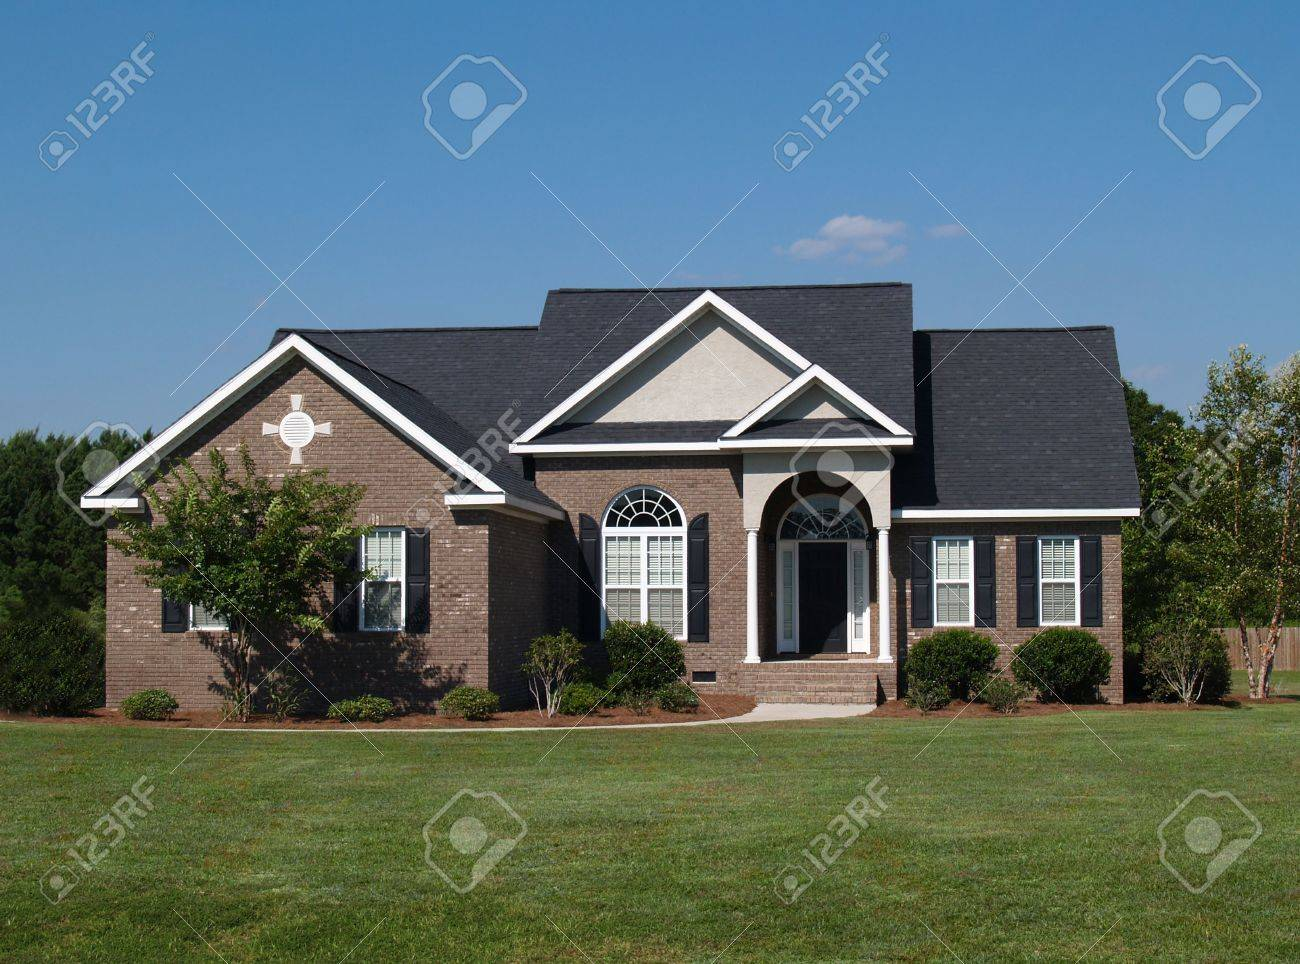 One story new brown brick residential home. Stock Photo - 5580805